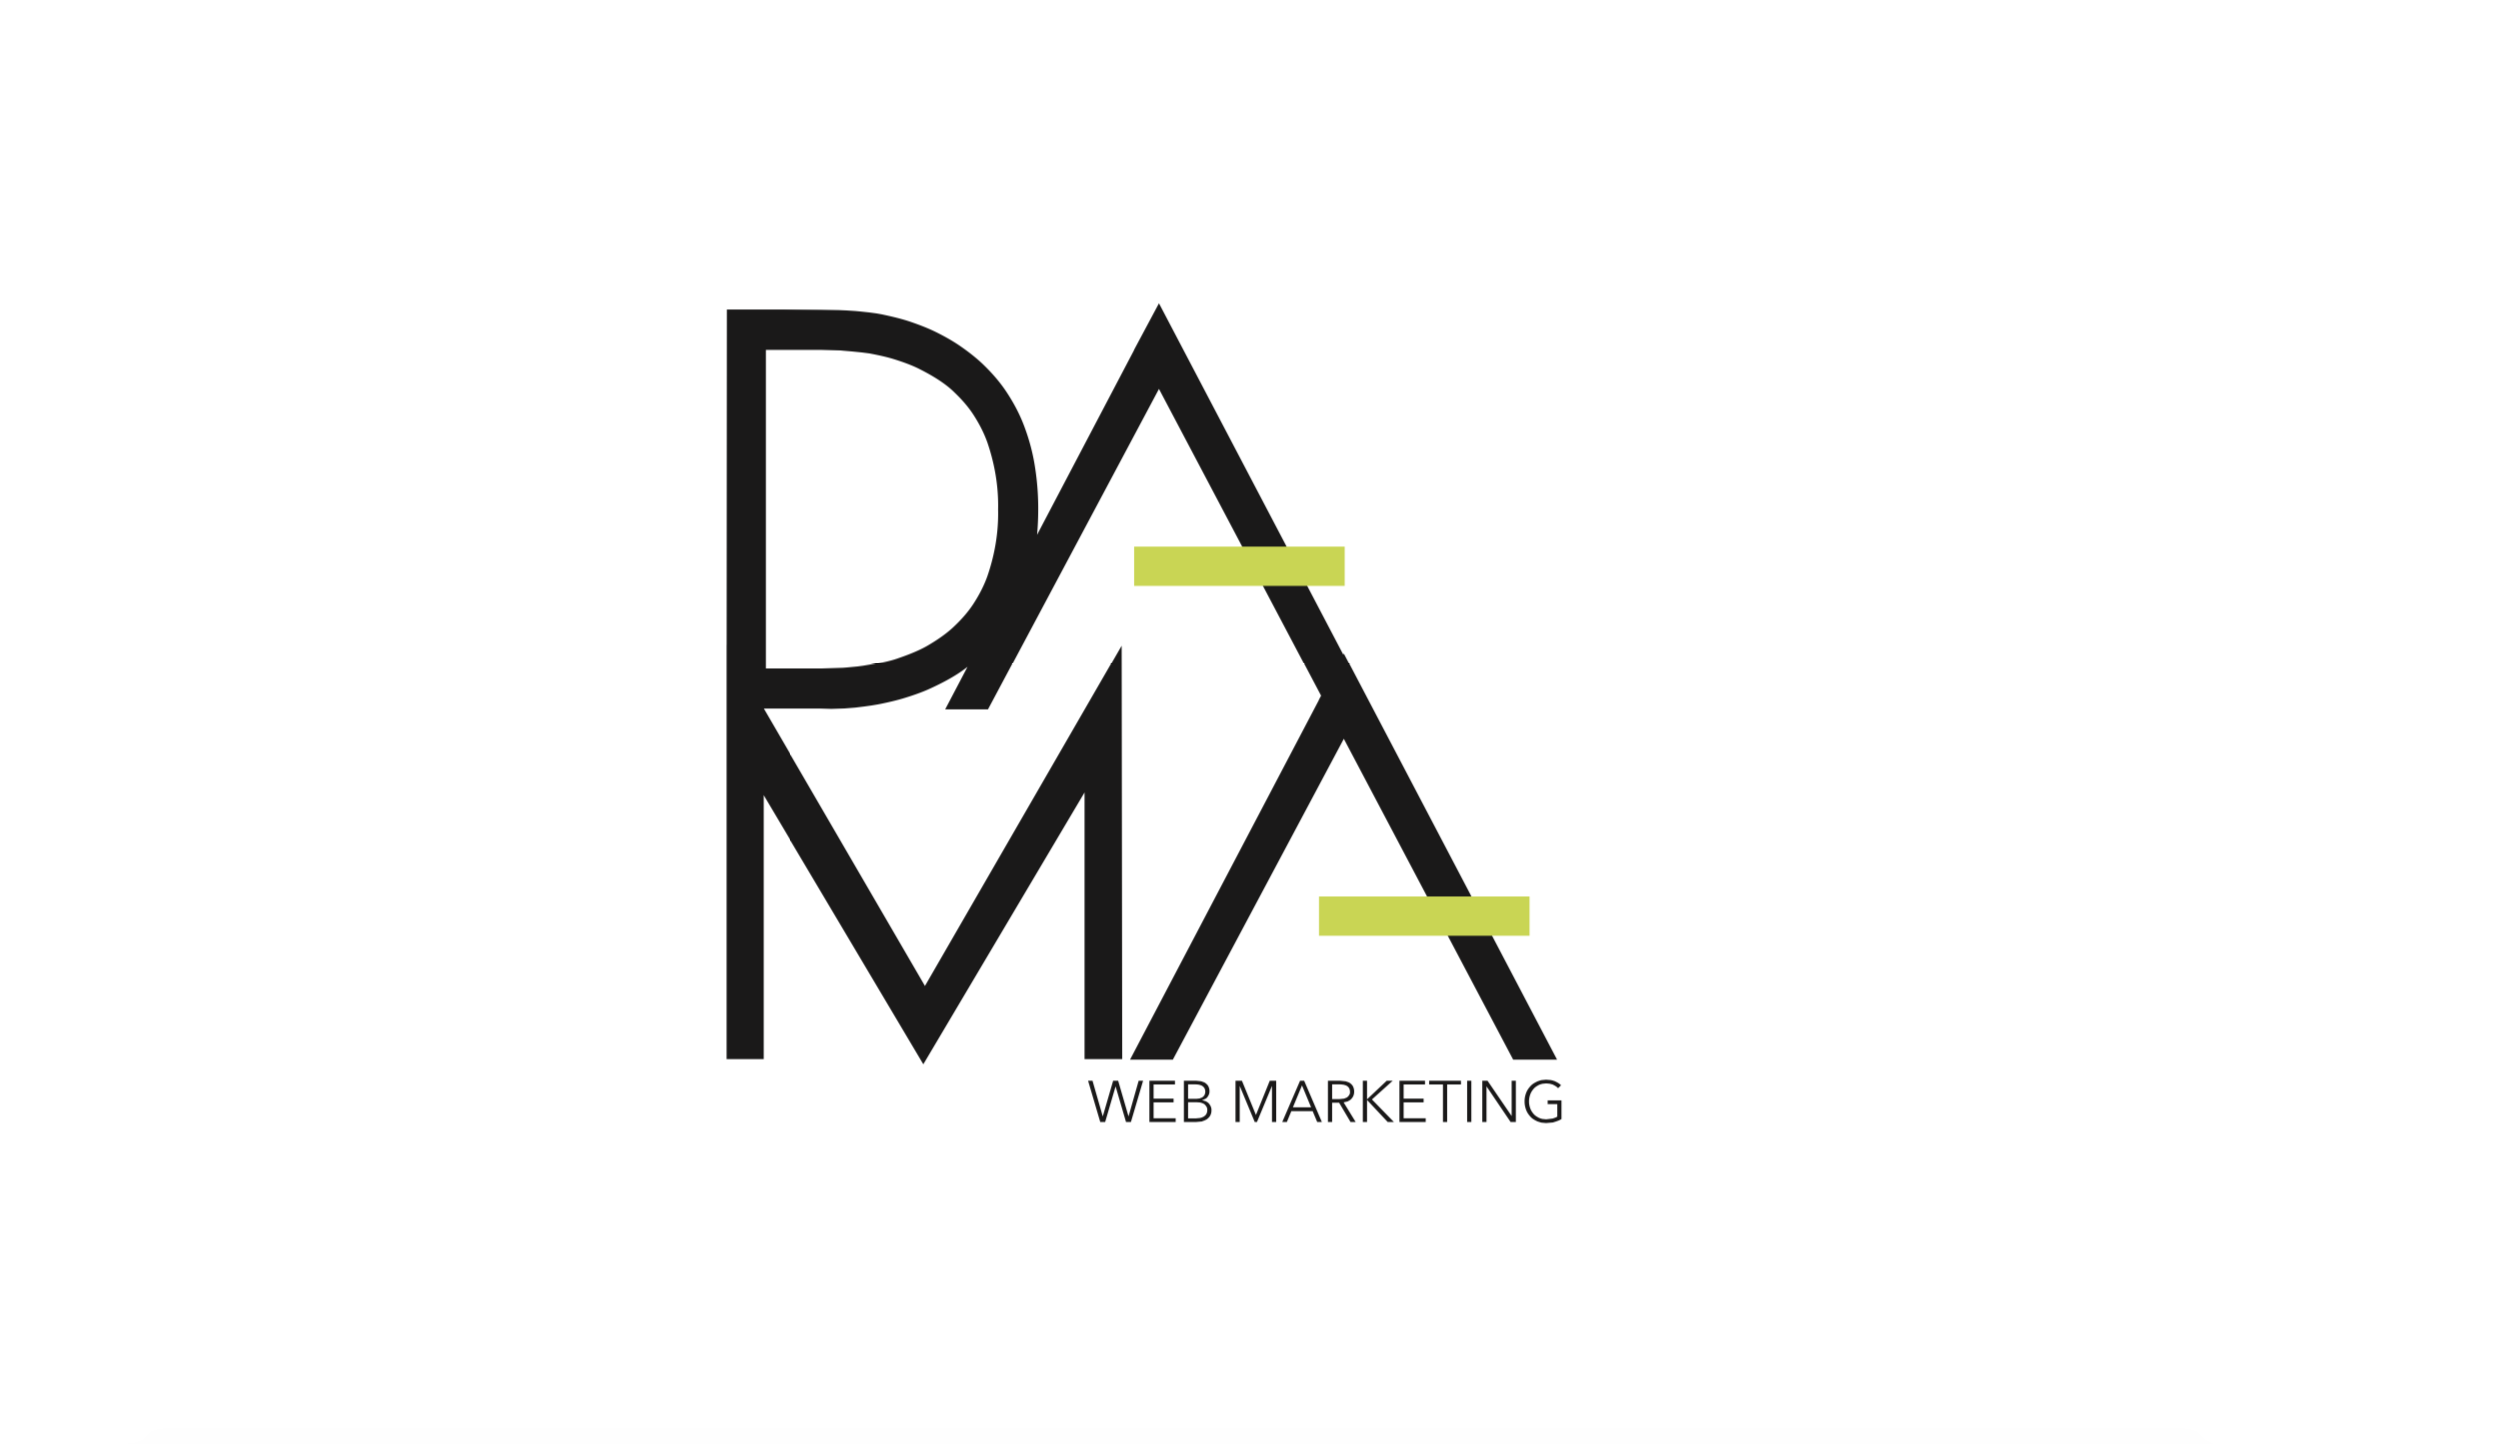 DAMA Web Marketing Agency si presenta.